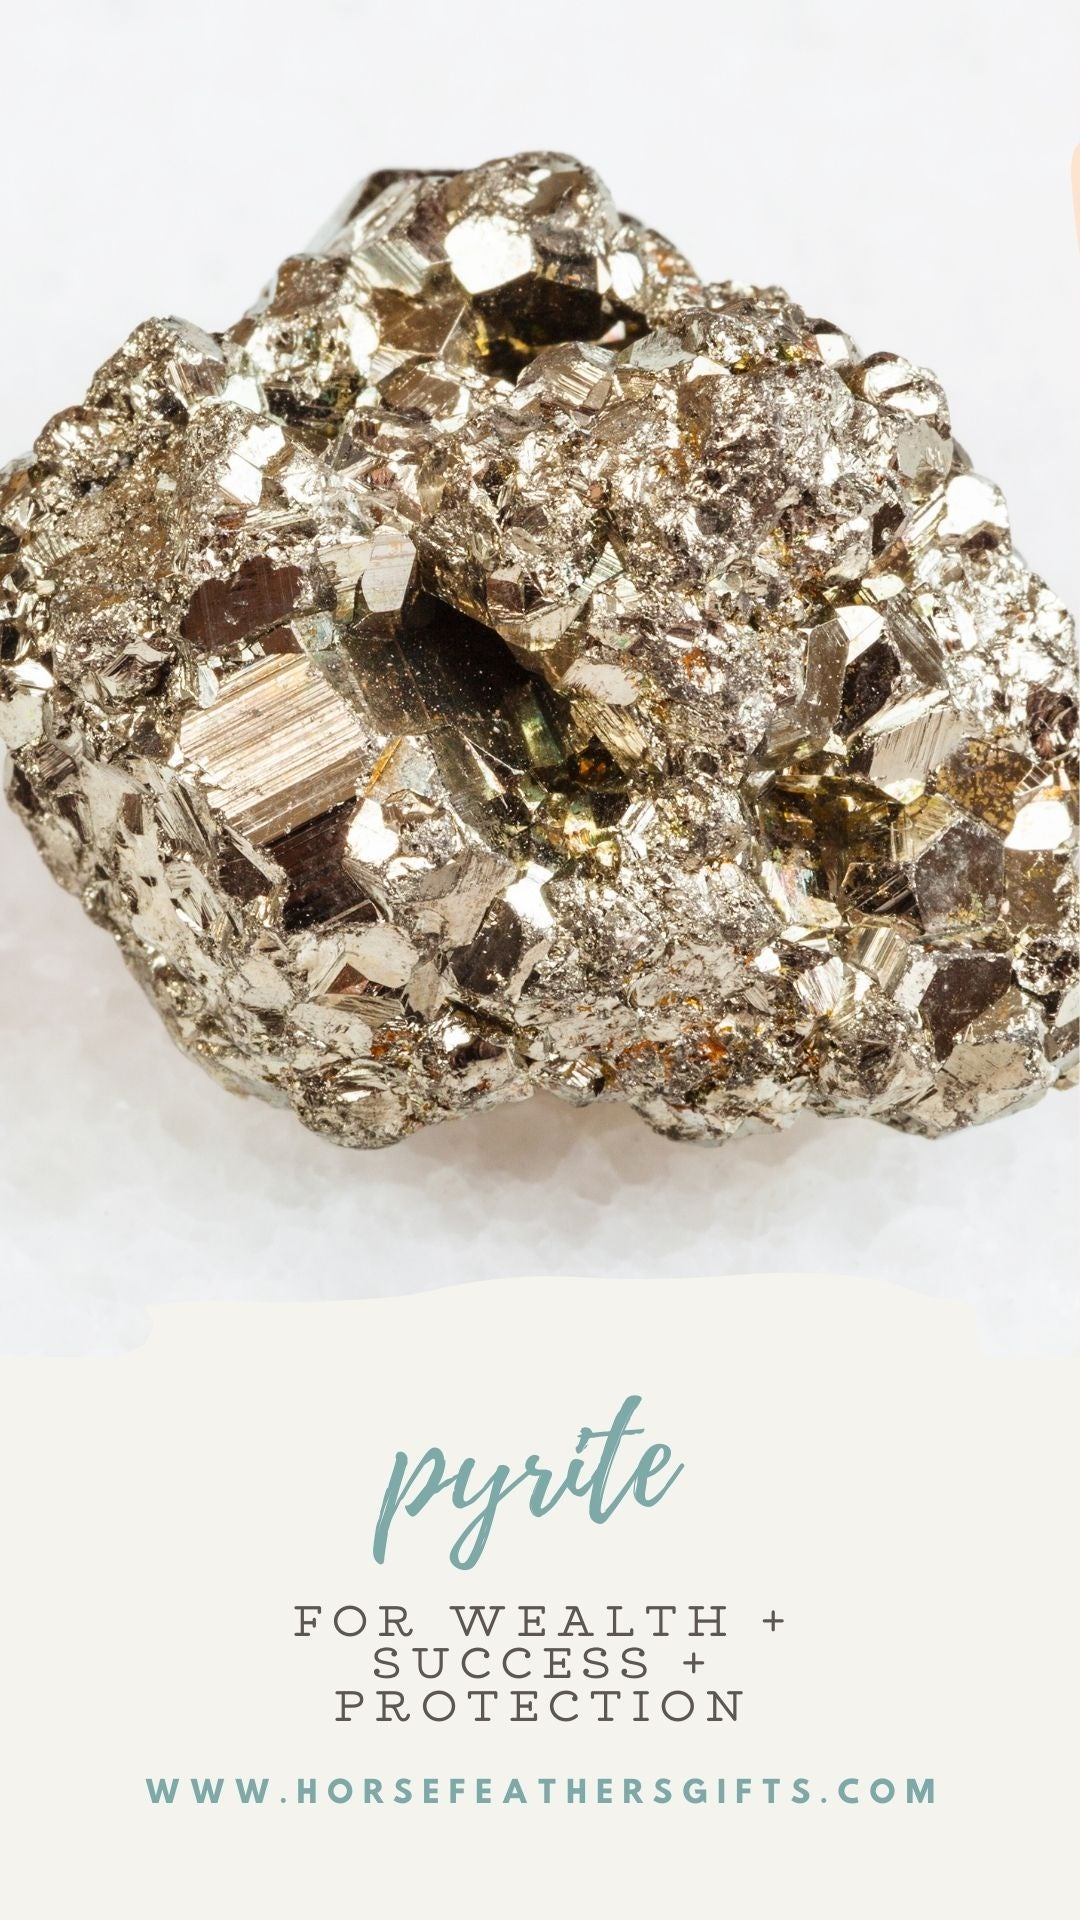 pyrite meaning and properties